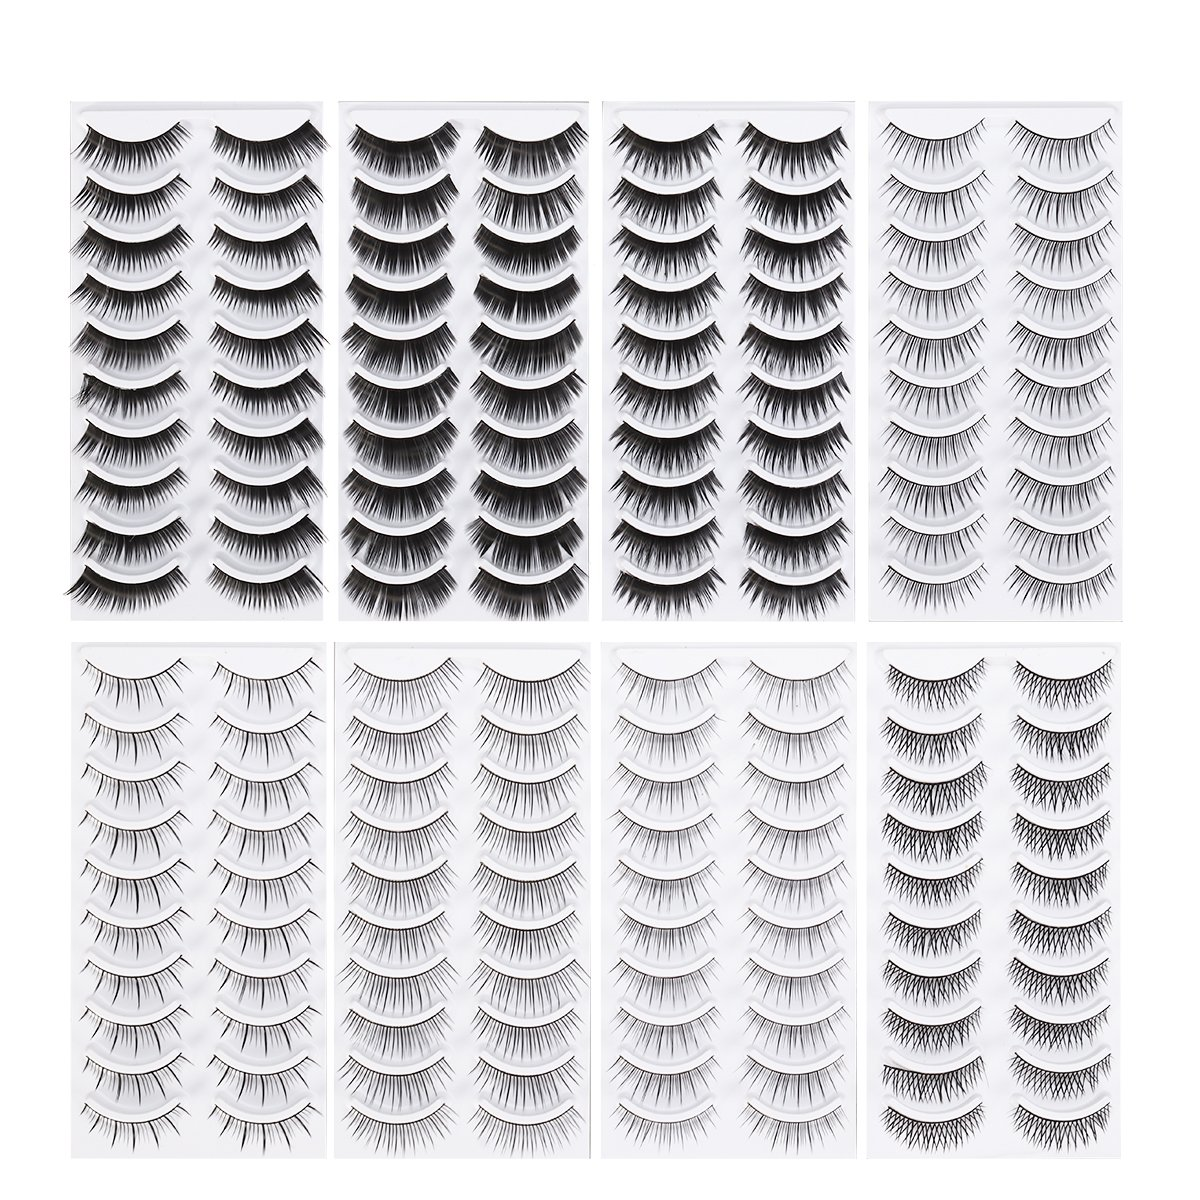 Frcolor 80 Pairs Natural Fake Eyelashes 10-Style Thick Long Eye Lashes for Women Lady Teenager Girls